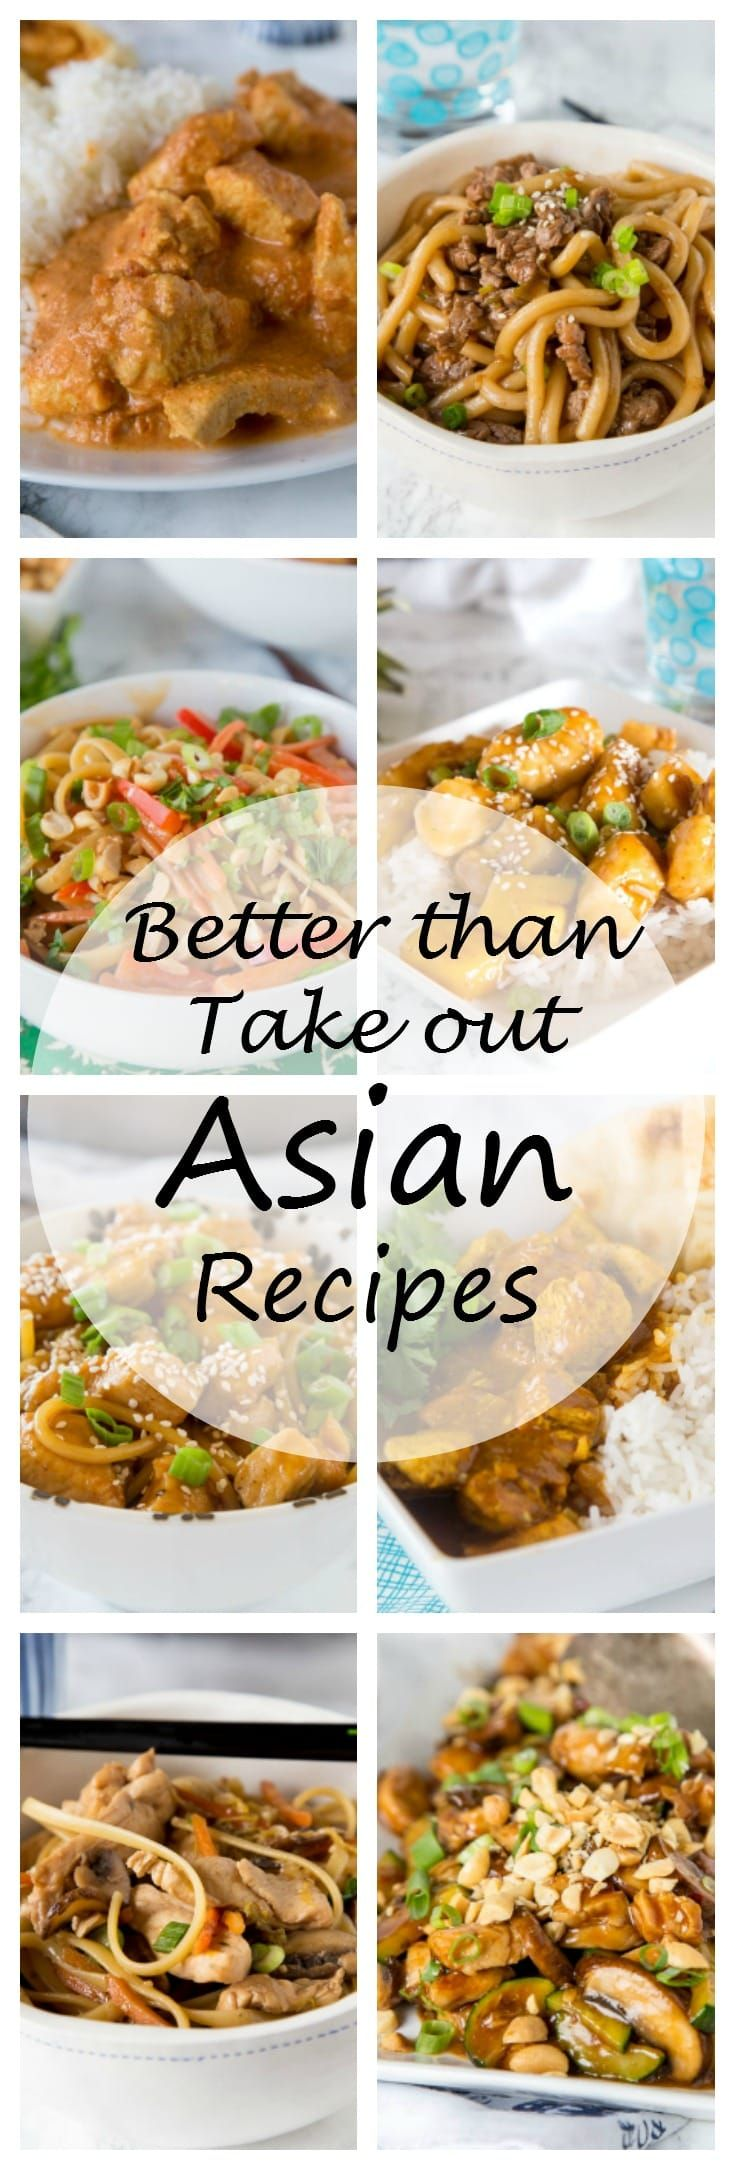 Better Than Take Out Asian Recipes - 29 Asian recipes that taste better, are better for you, and most likely quicker than take out. Put the menu down, and whip up one of these for dinner tonight!